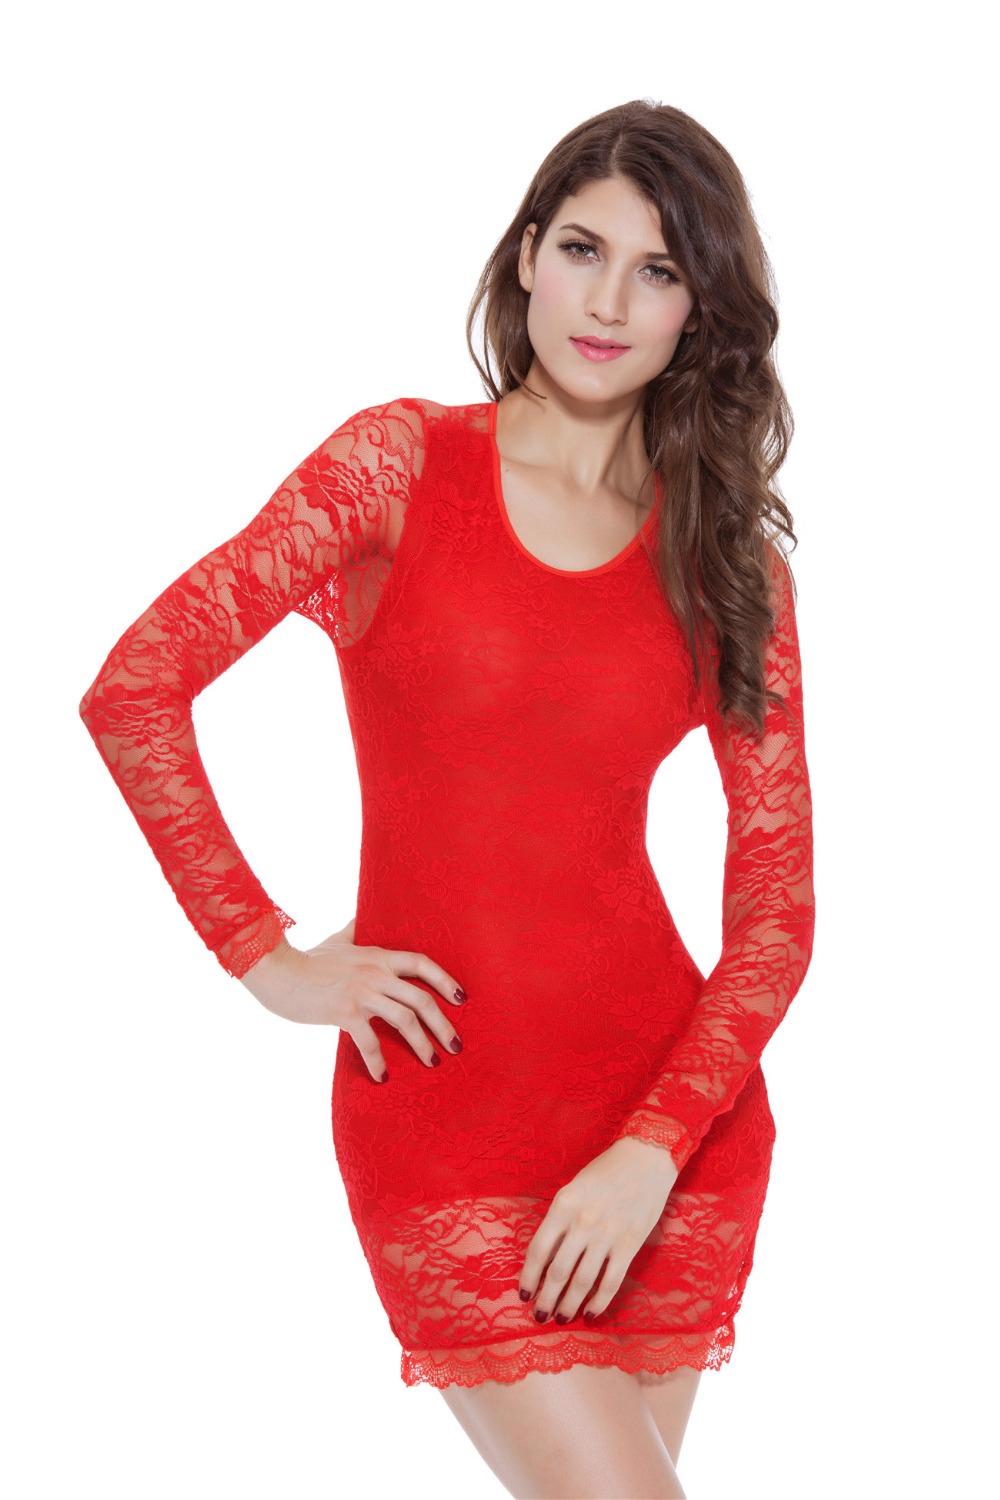 Compare Prices on Valentines Day Dress- Online Shopping/Buy Low ...